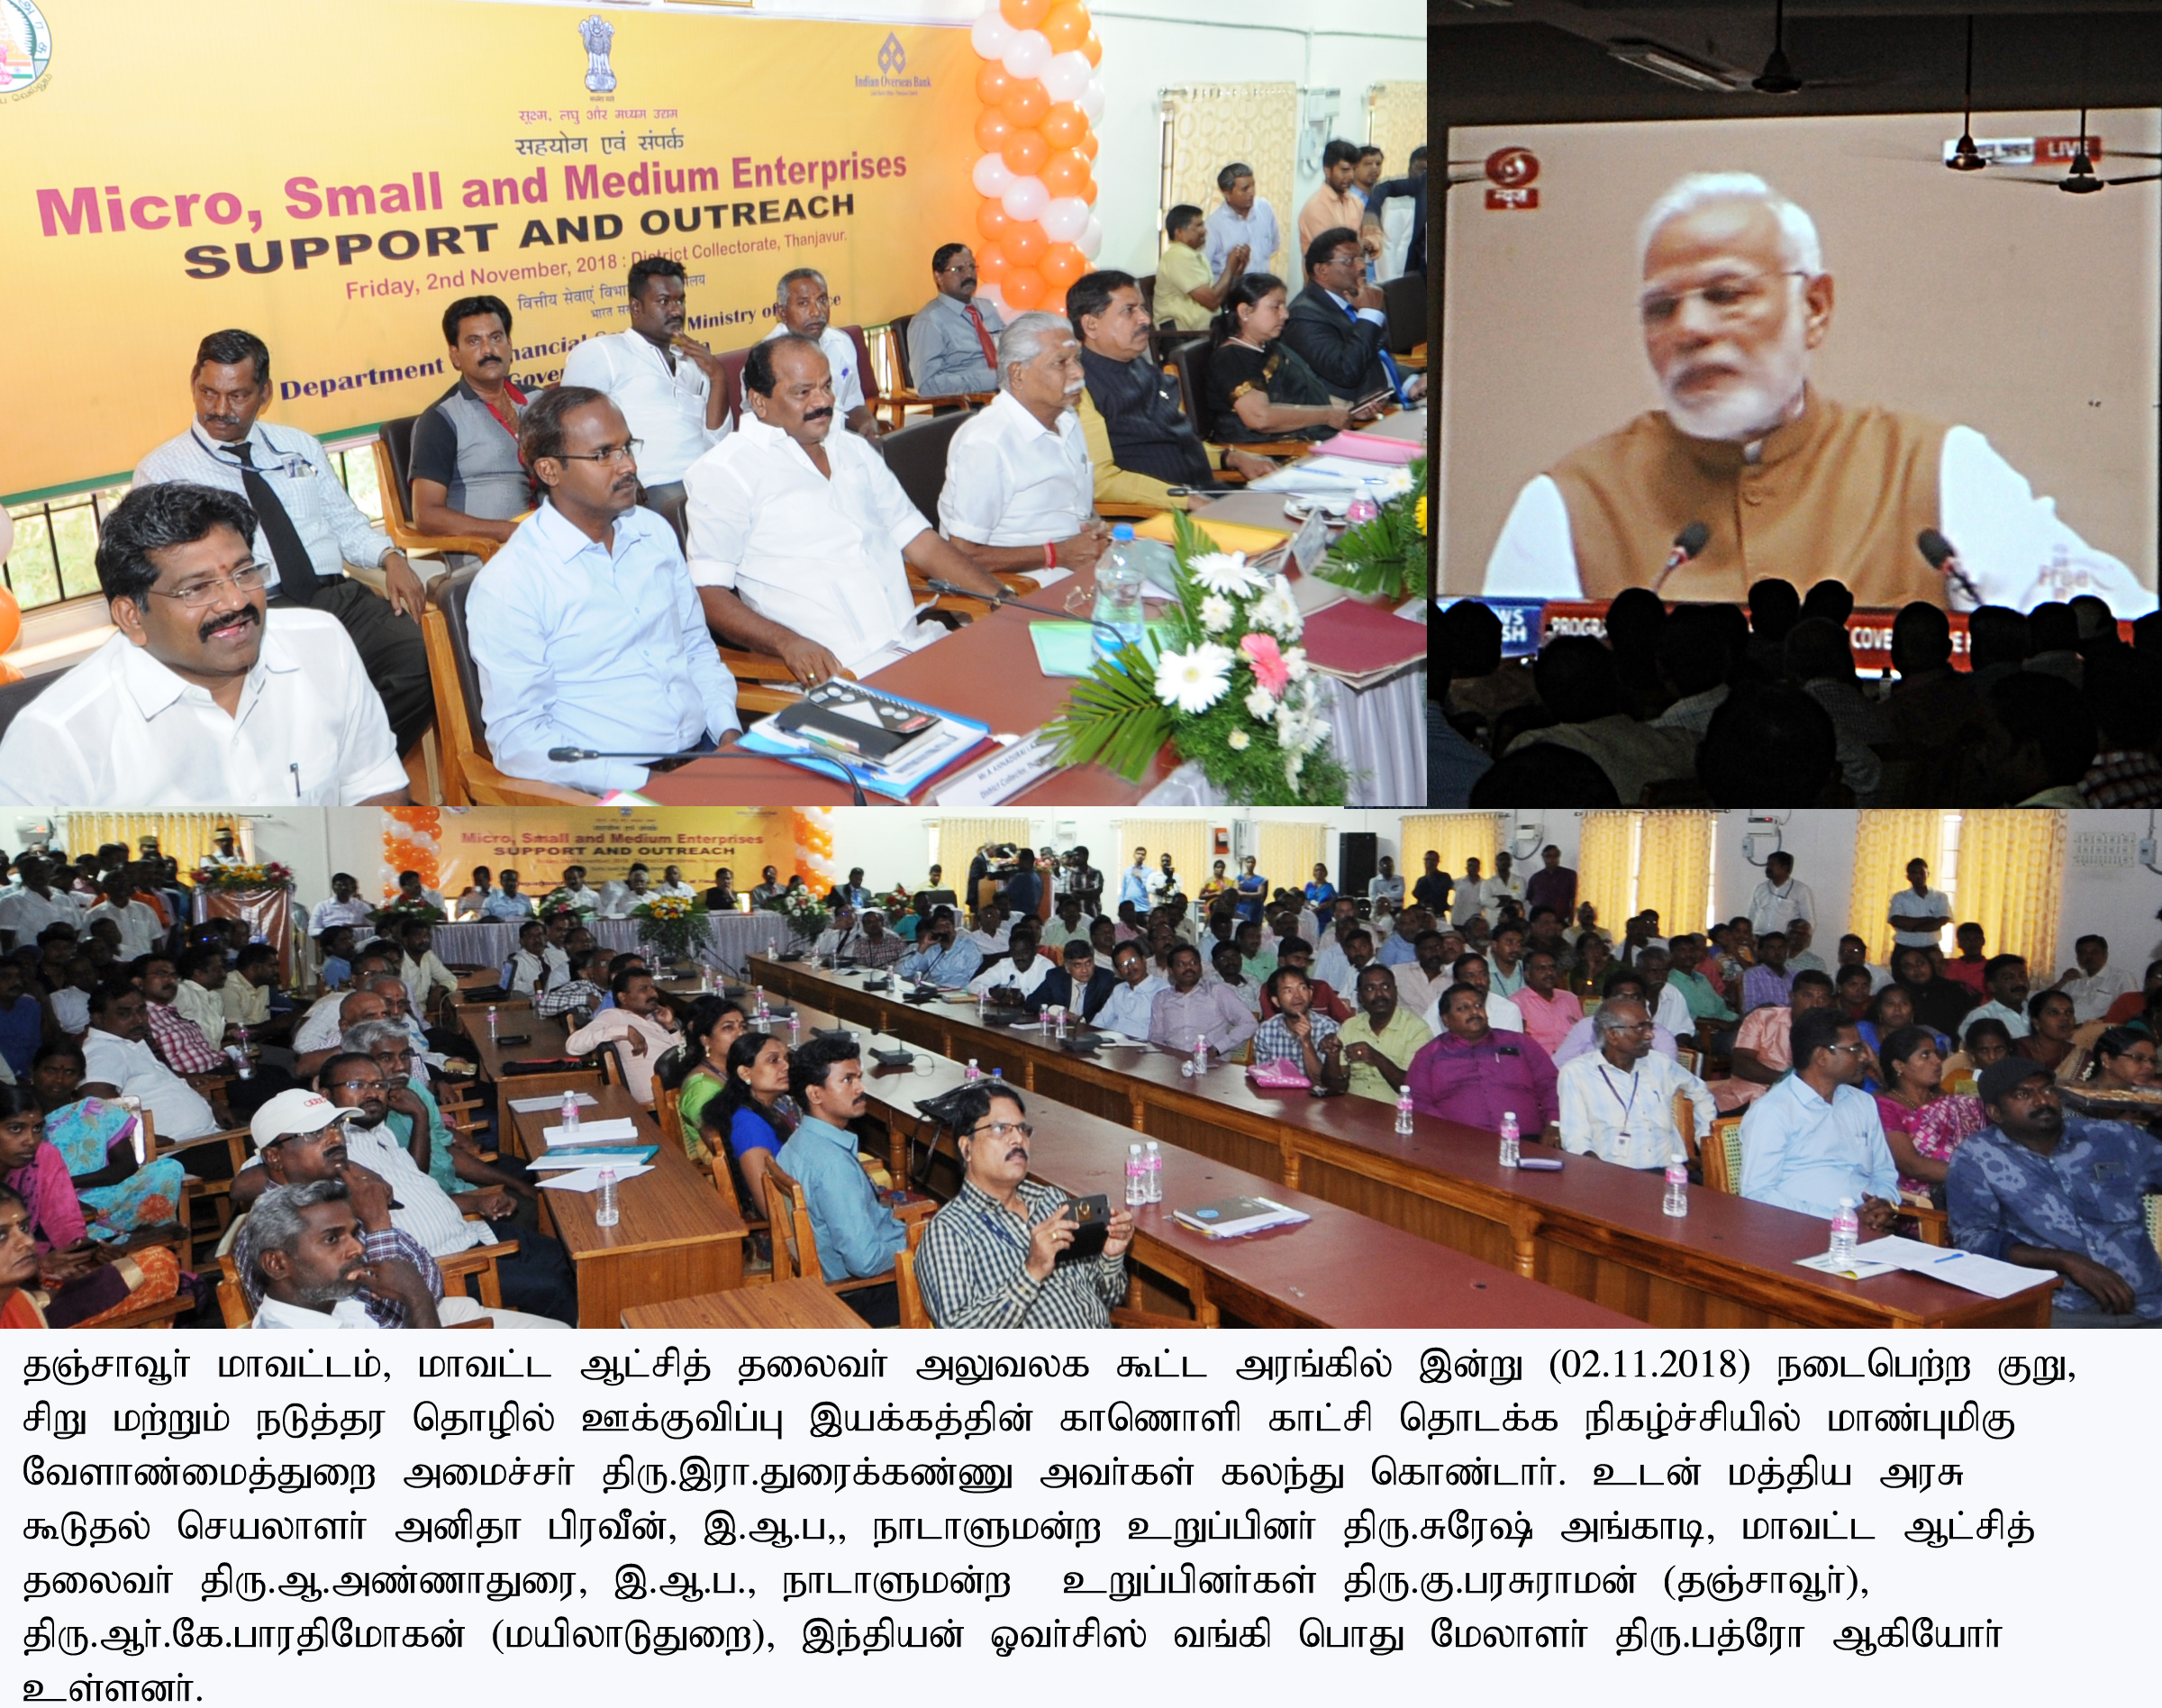 Image of MSME video comference